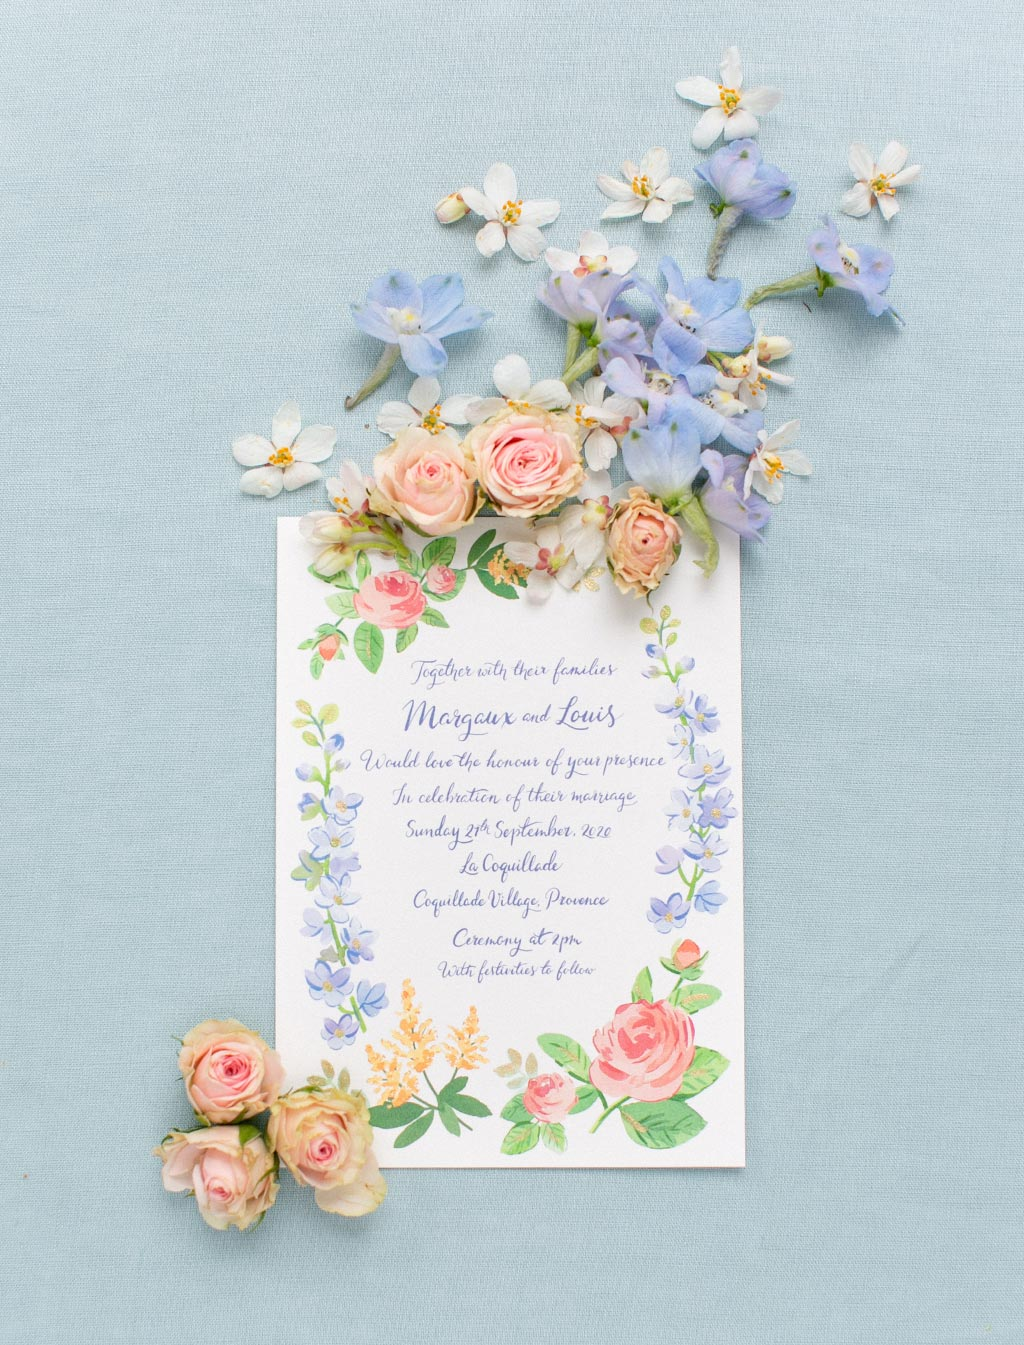 Where to find inspiration for your wedding stationery